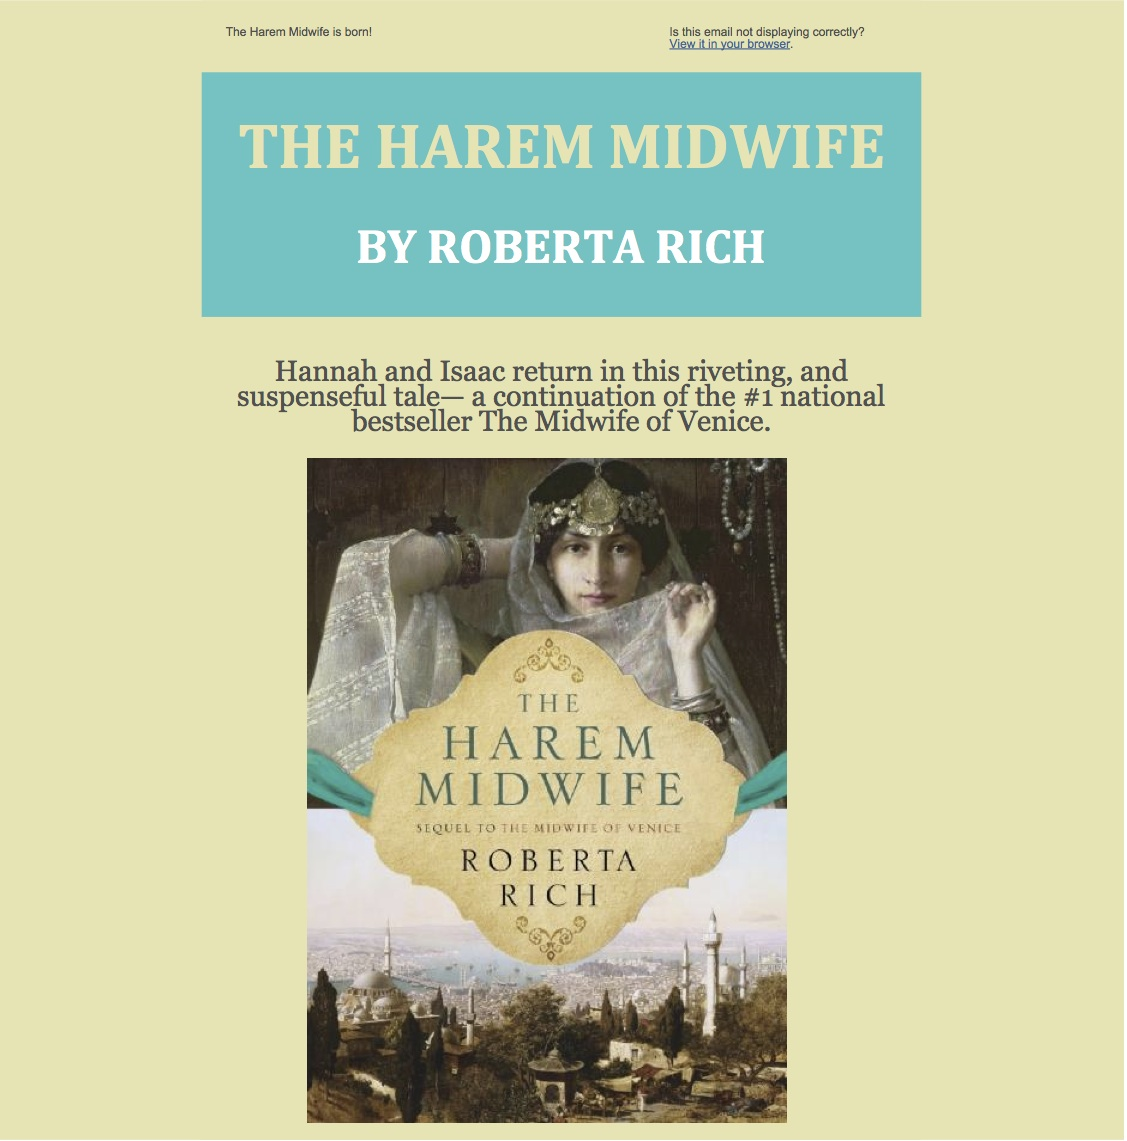 Harem Midwife Newsletter part 1